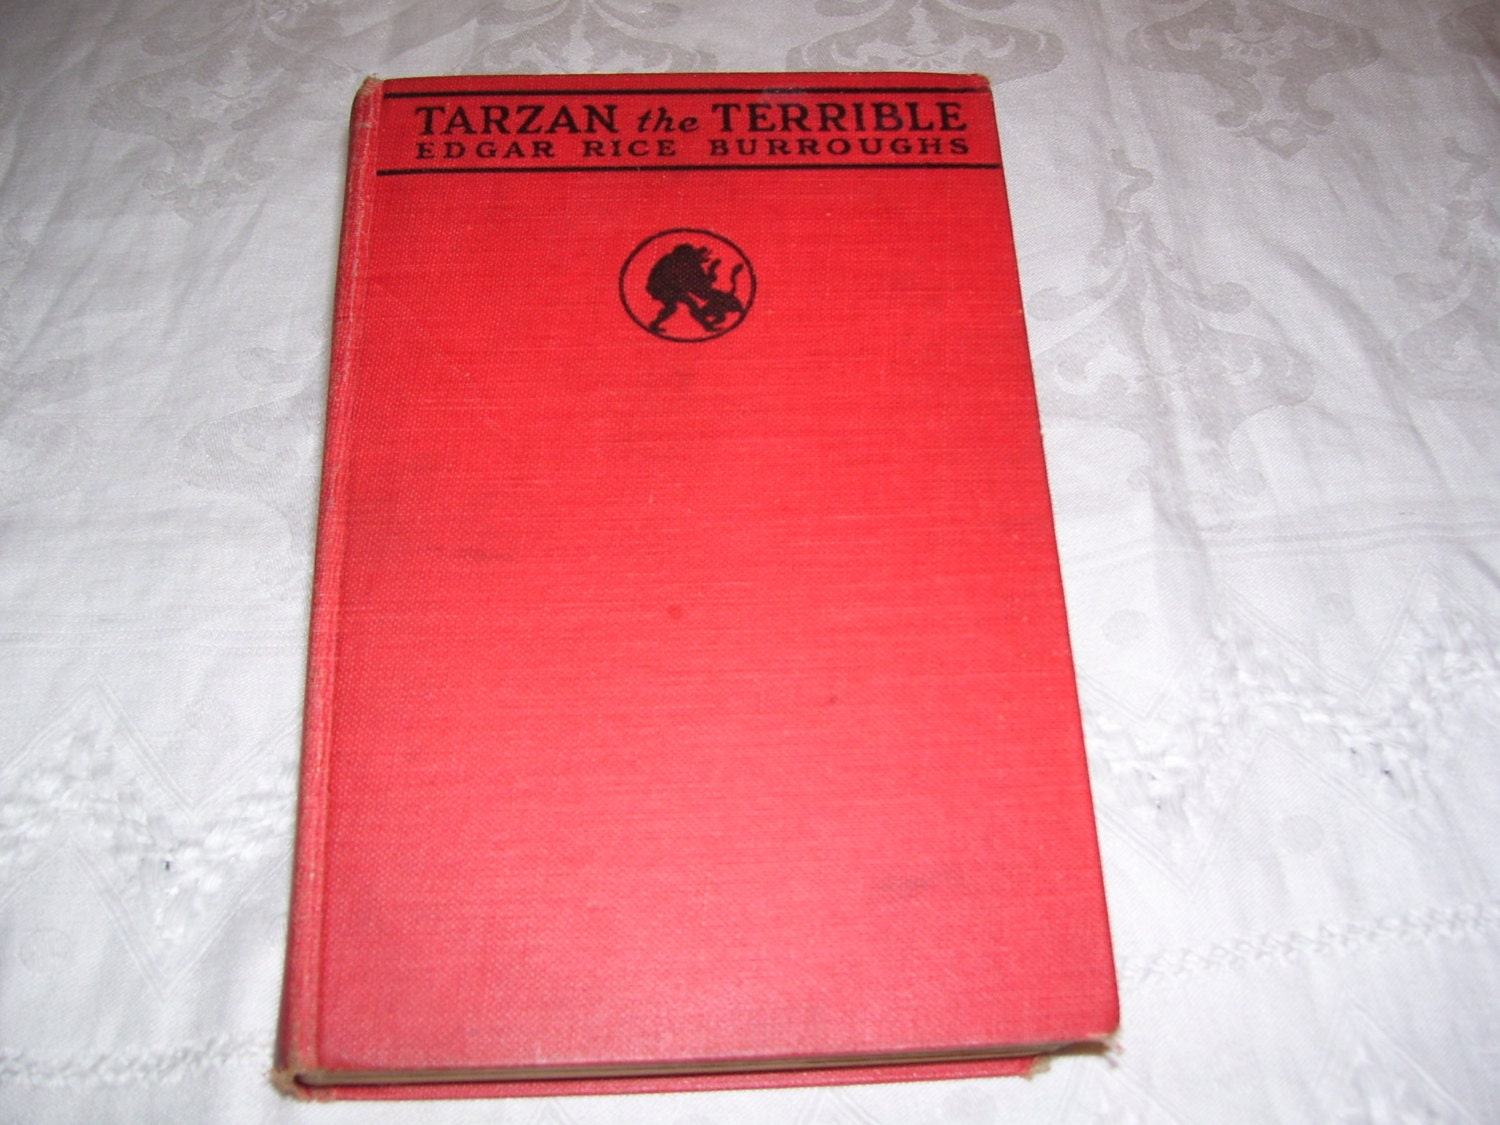 TARZAN THE TERRIBLE Edgar Rice Burroughs - TARZAN #8 - 1ST 1963 BALLANTINE ED